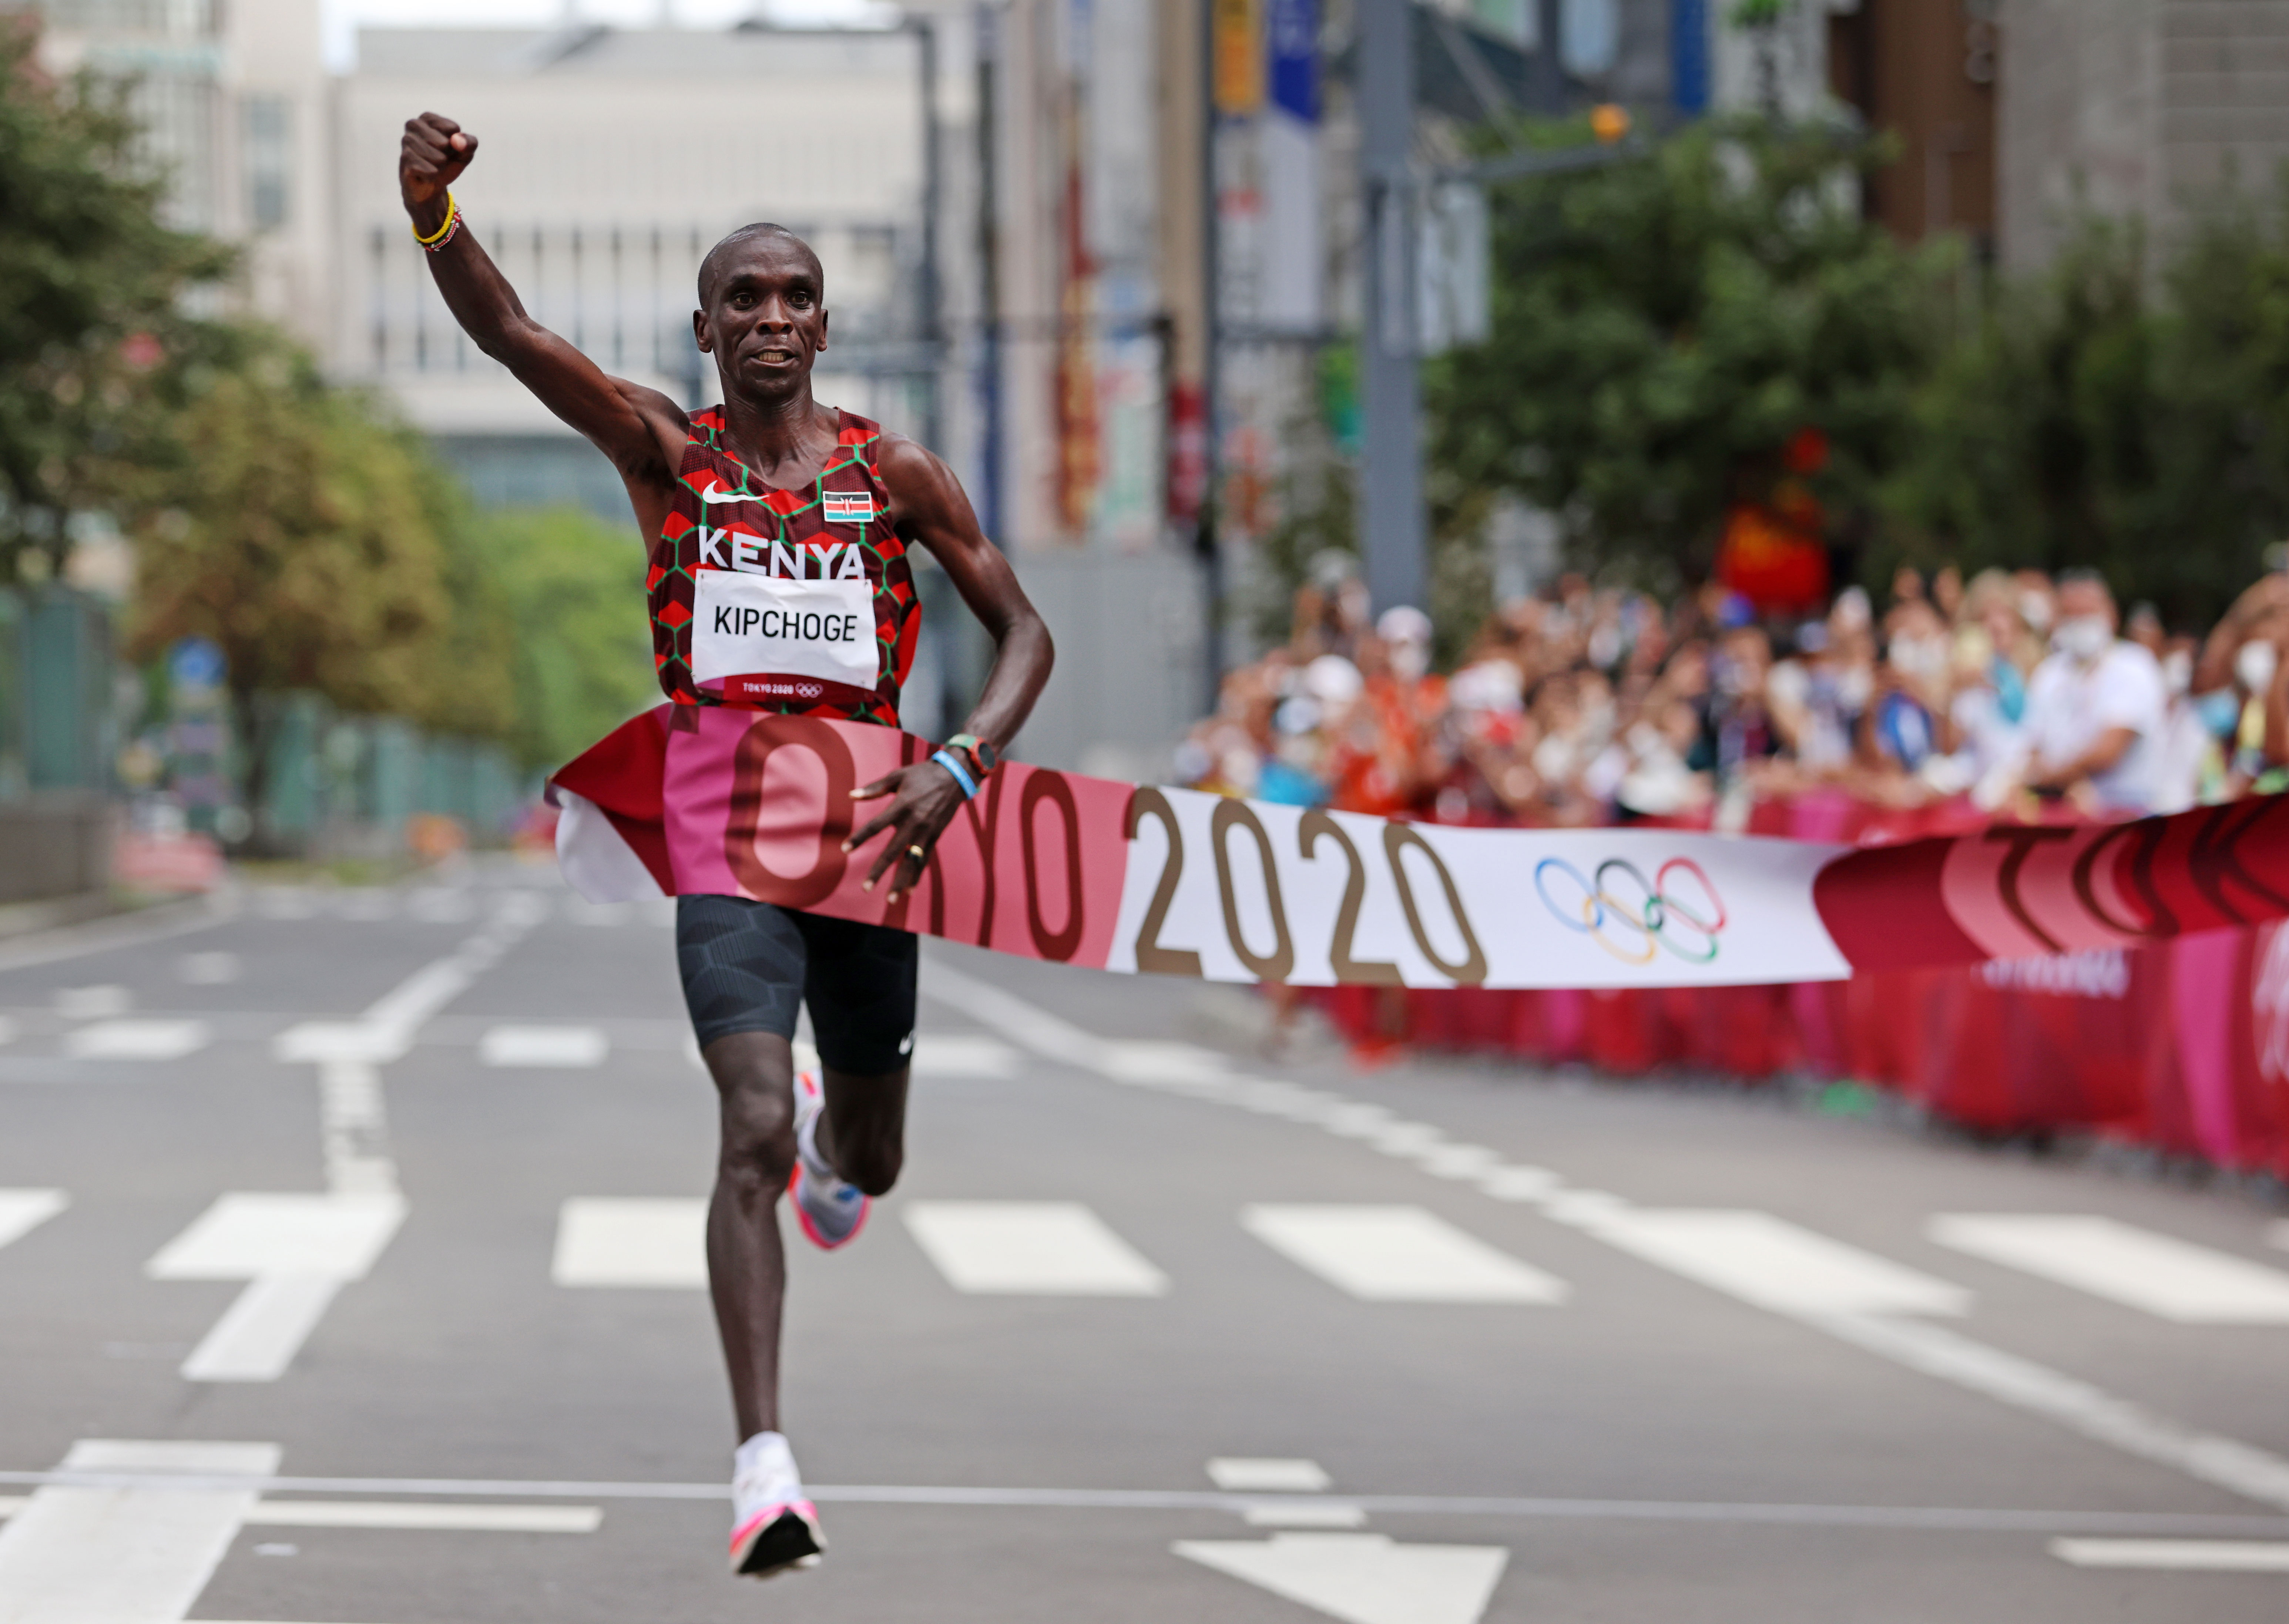 Kenya's Eliud Kipchoge crosses the finish line August 8to win the marathonfor the second Olympics in a row. Kipchoge, the world-record holder in the event, finished with a time of 2:08:38.